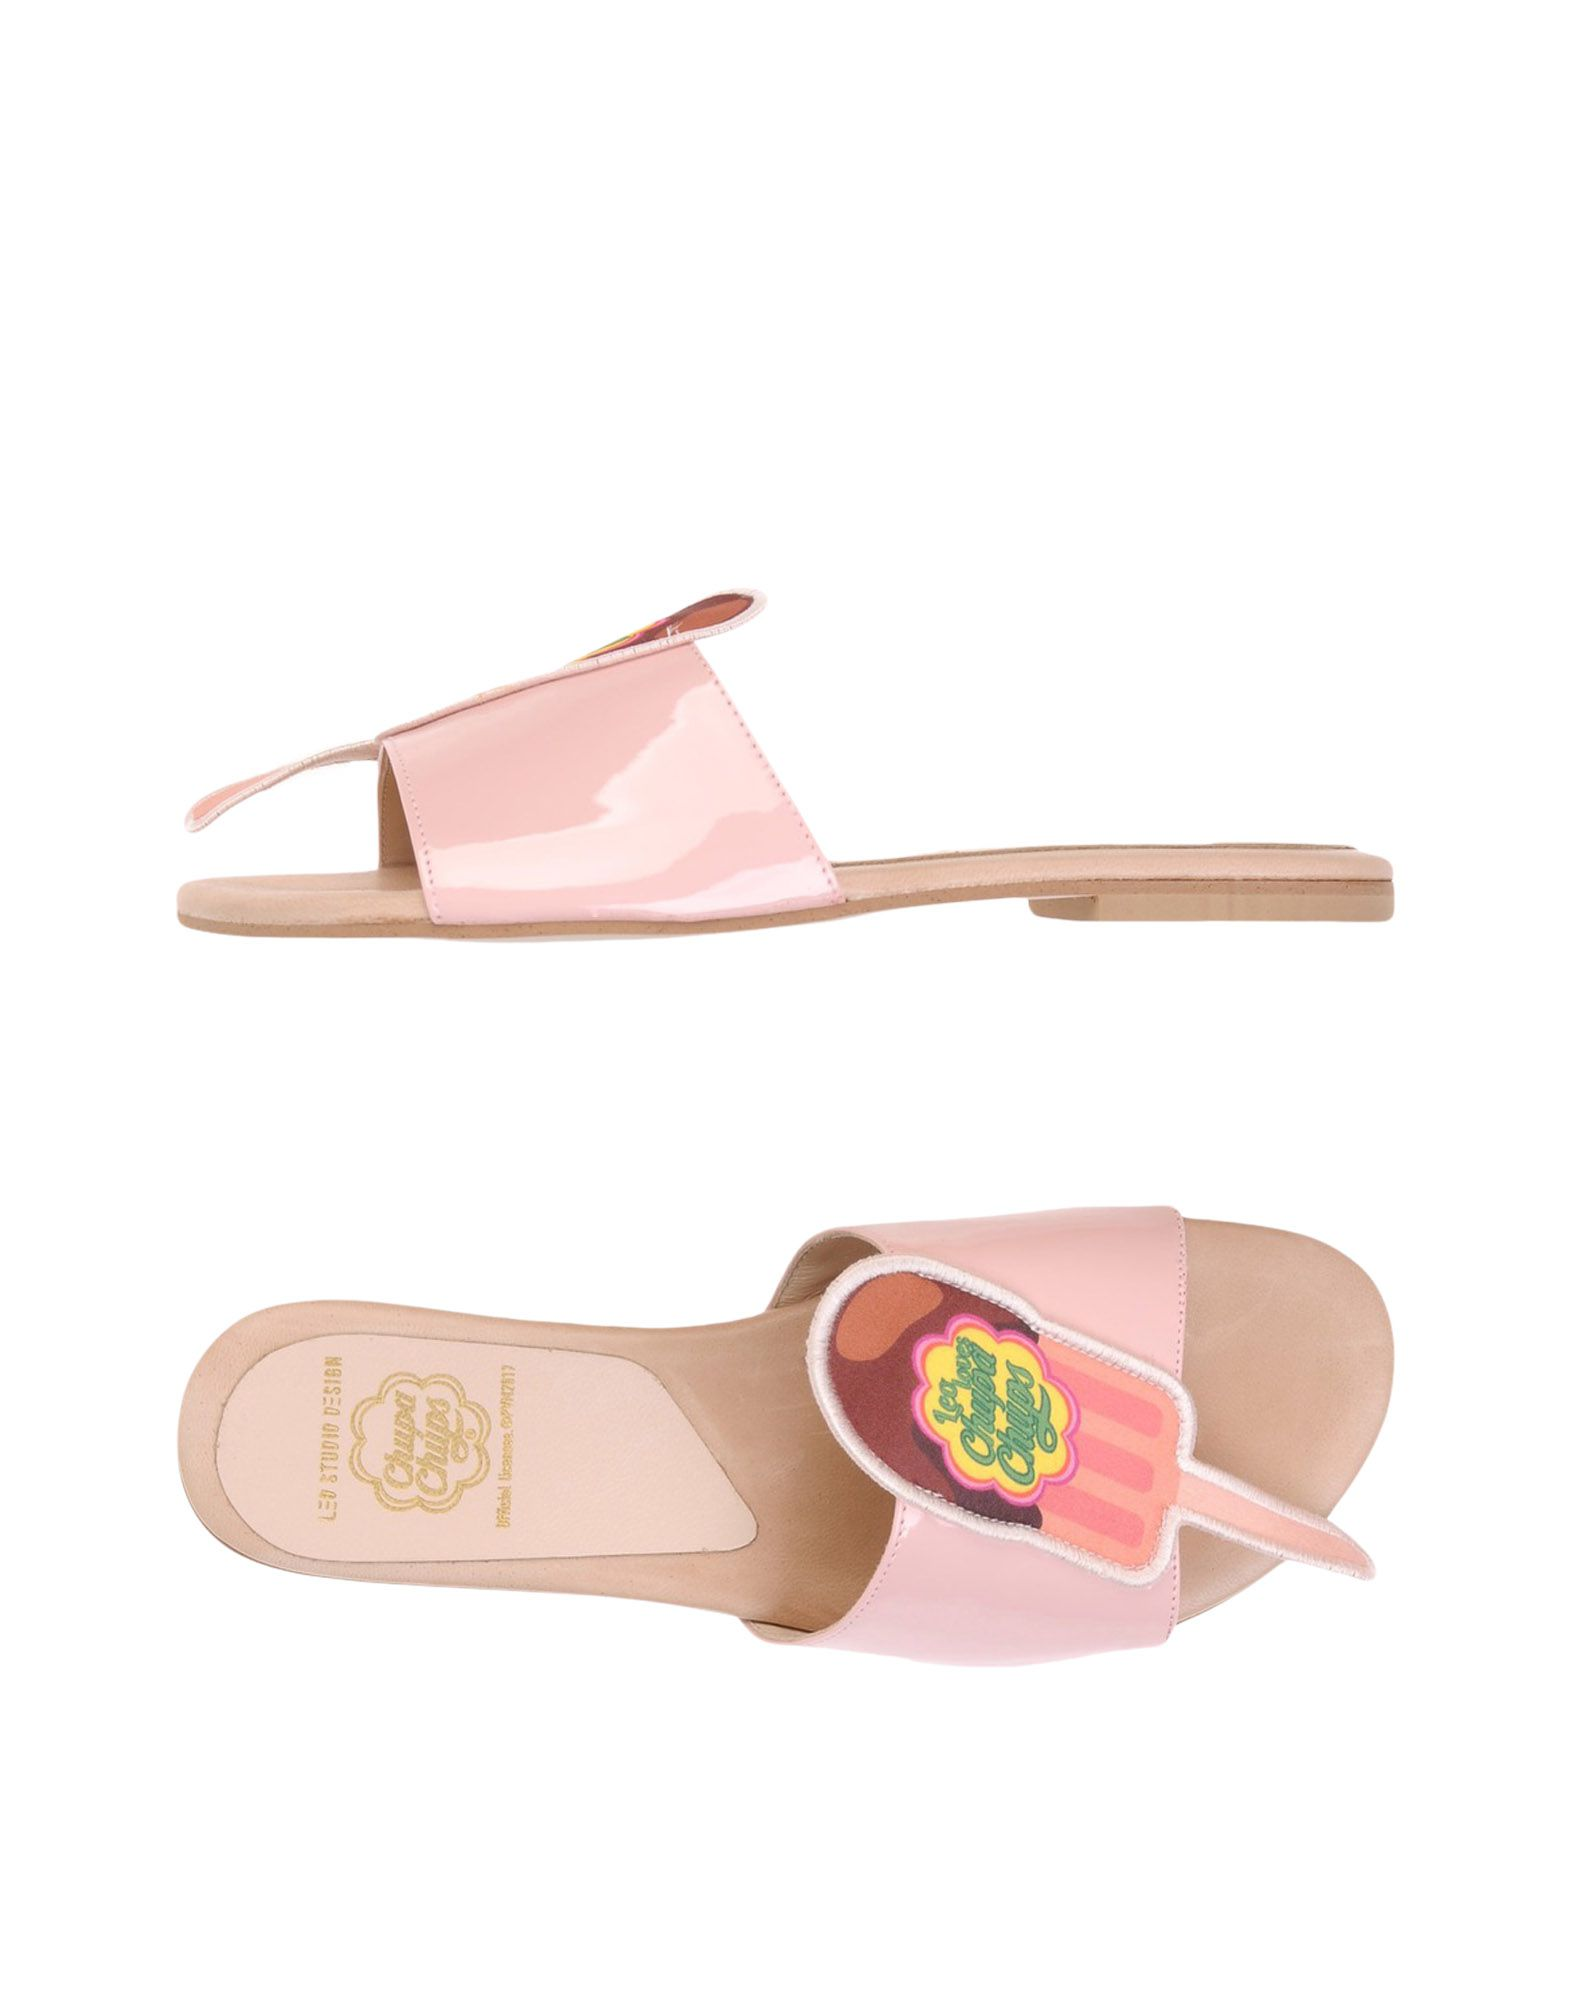 Sandali Leo Studio Design Slipper - Donna - Acquista online su